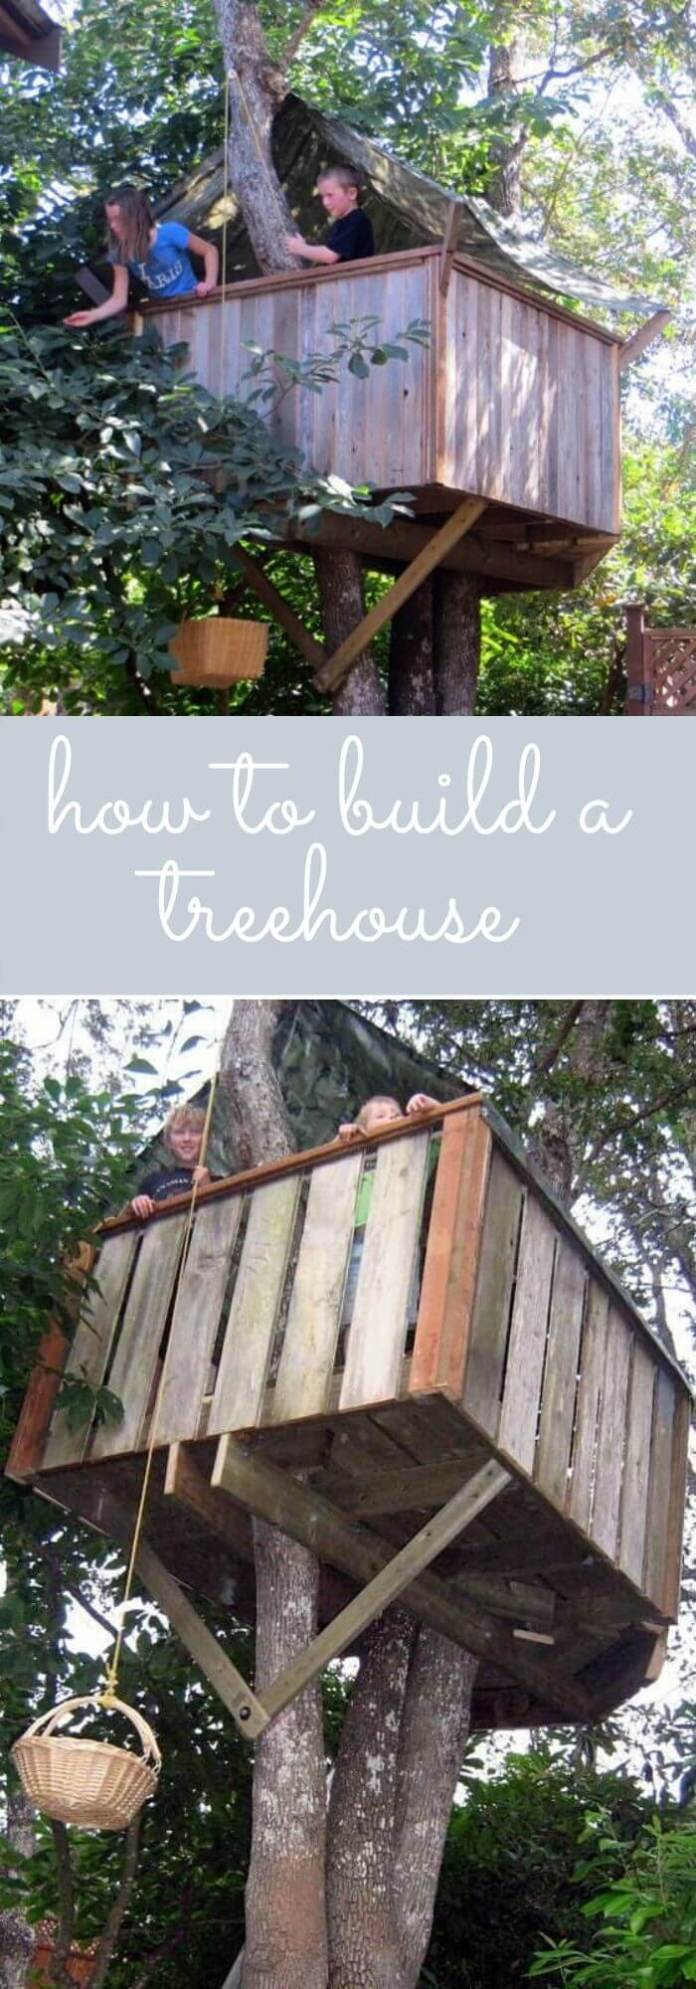 Build a treehouse for your kids